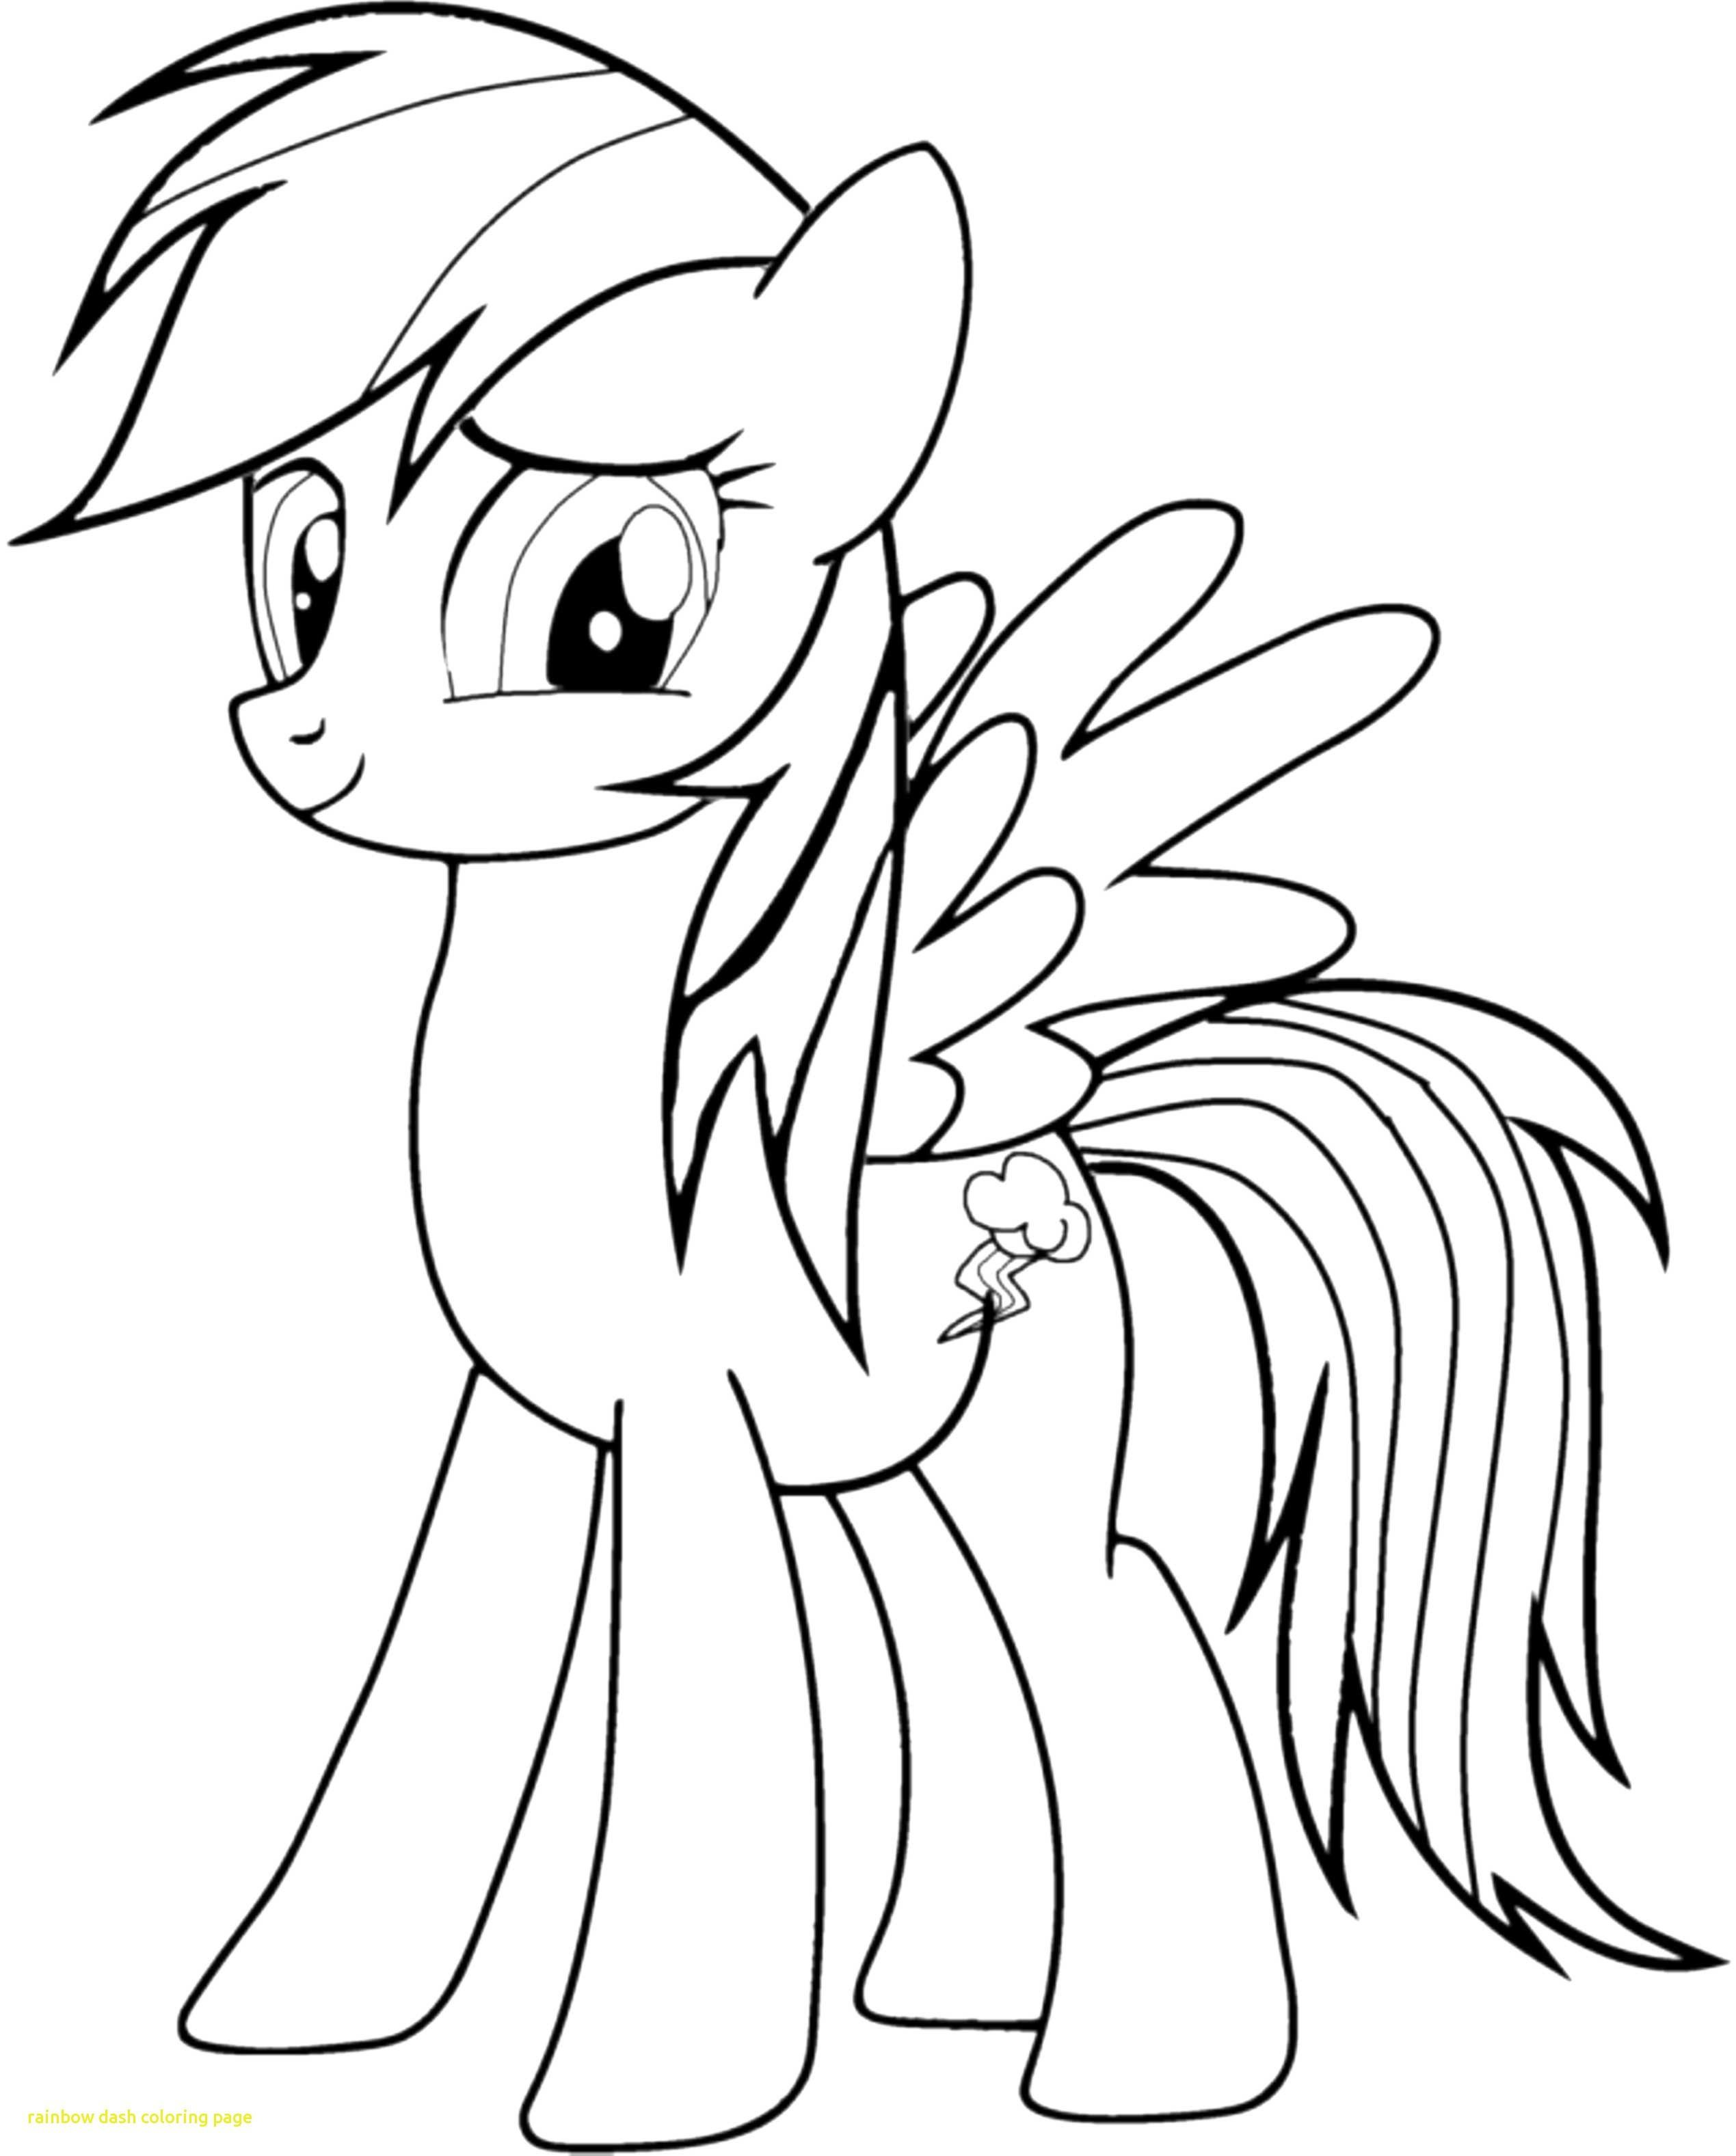 My Little Pony Rainbow Dash Coloring Pages Games Through The Thousand Photographs On Th Horse Coloring Pages My Little Pony Coloring My Little Pony Printable